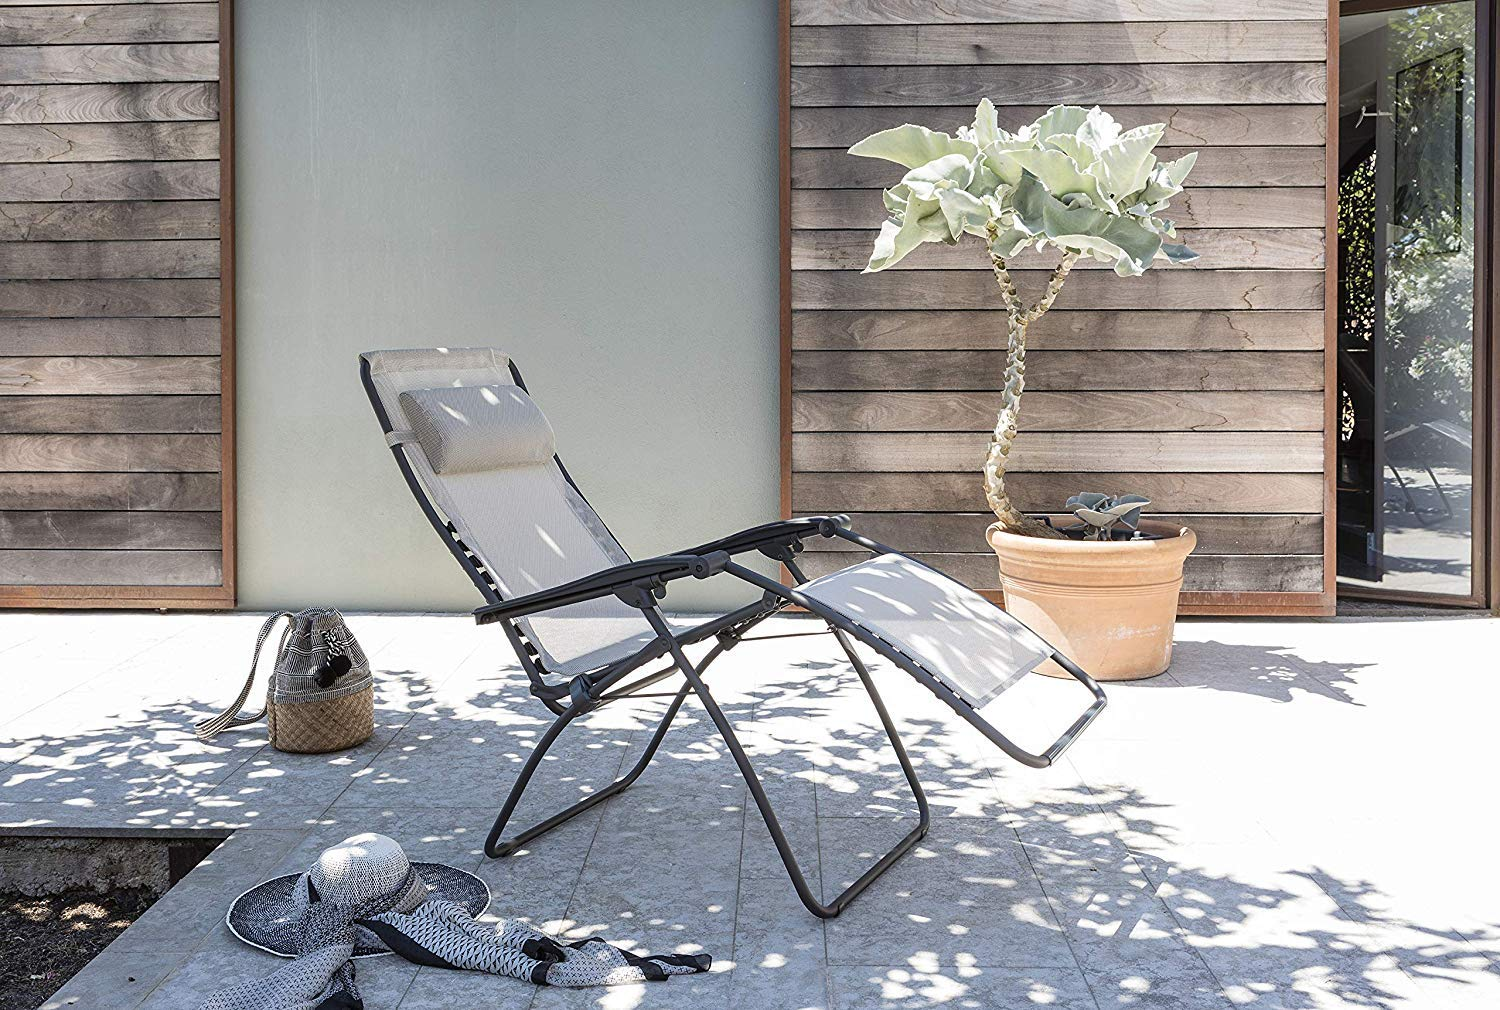 Lafuma Recliner, Foldable and adjustable, Lace System, RSXA, Batyline, Colour: Ocean, LFM2034 8547